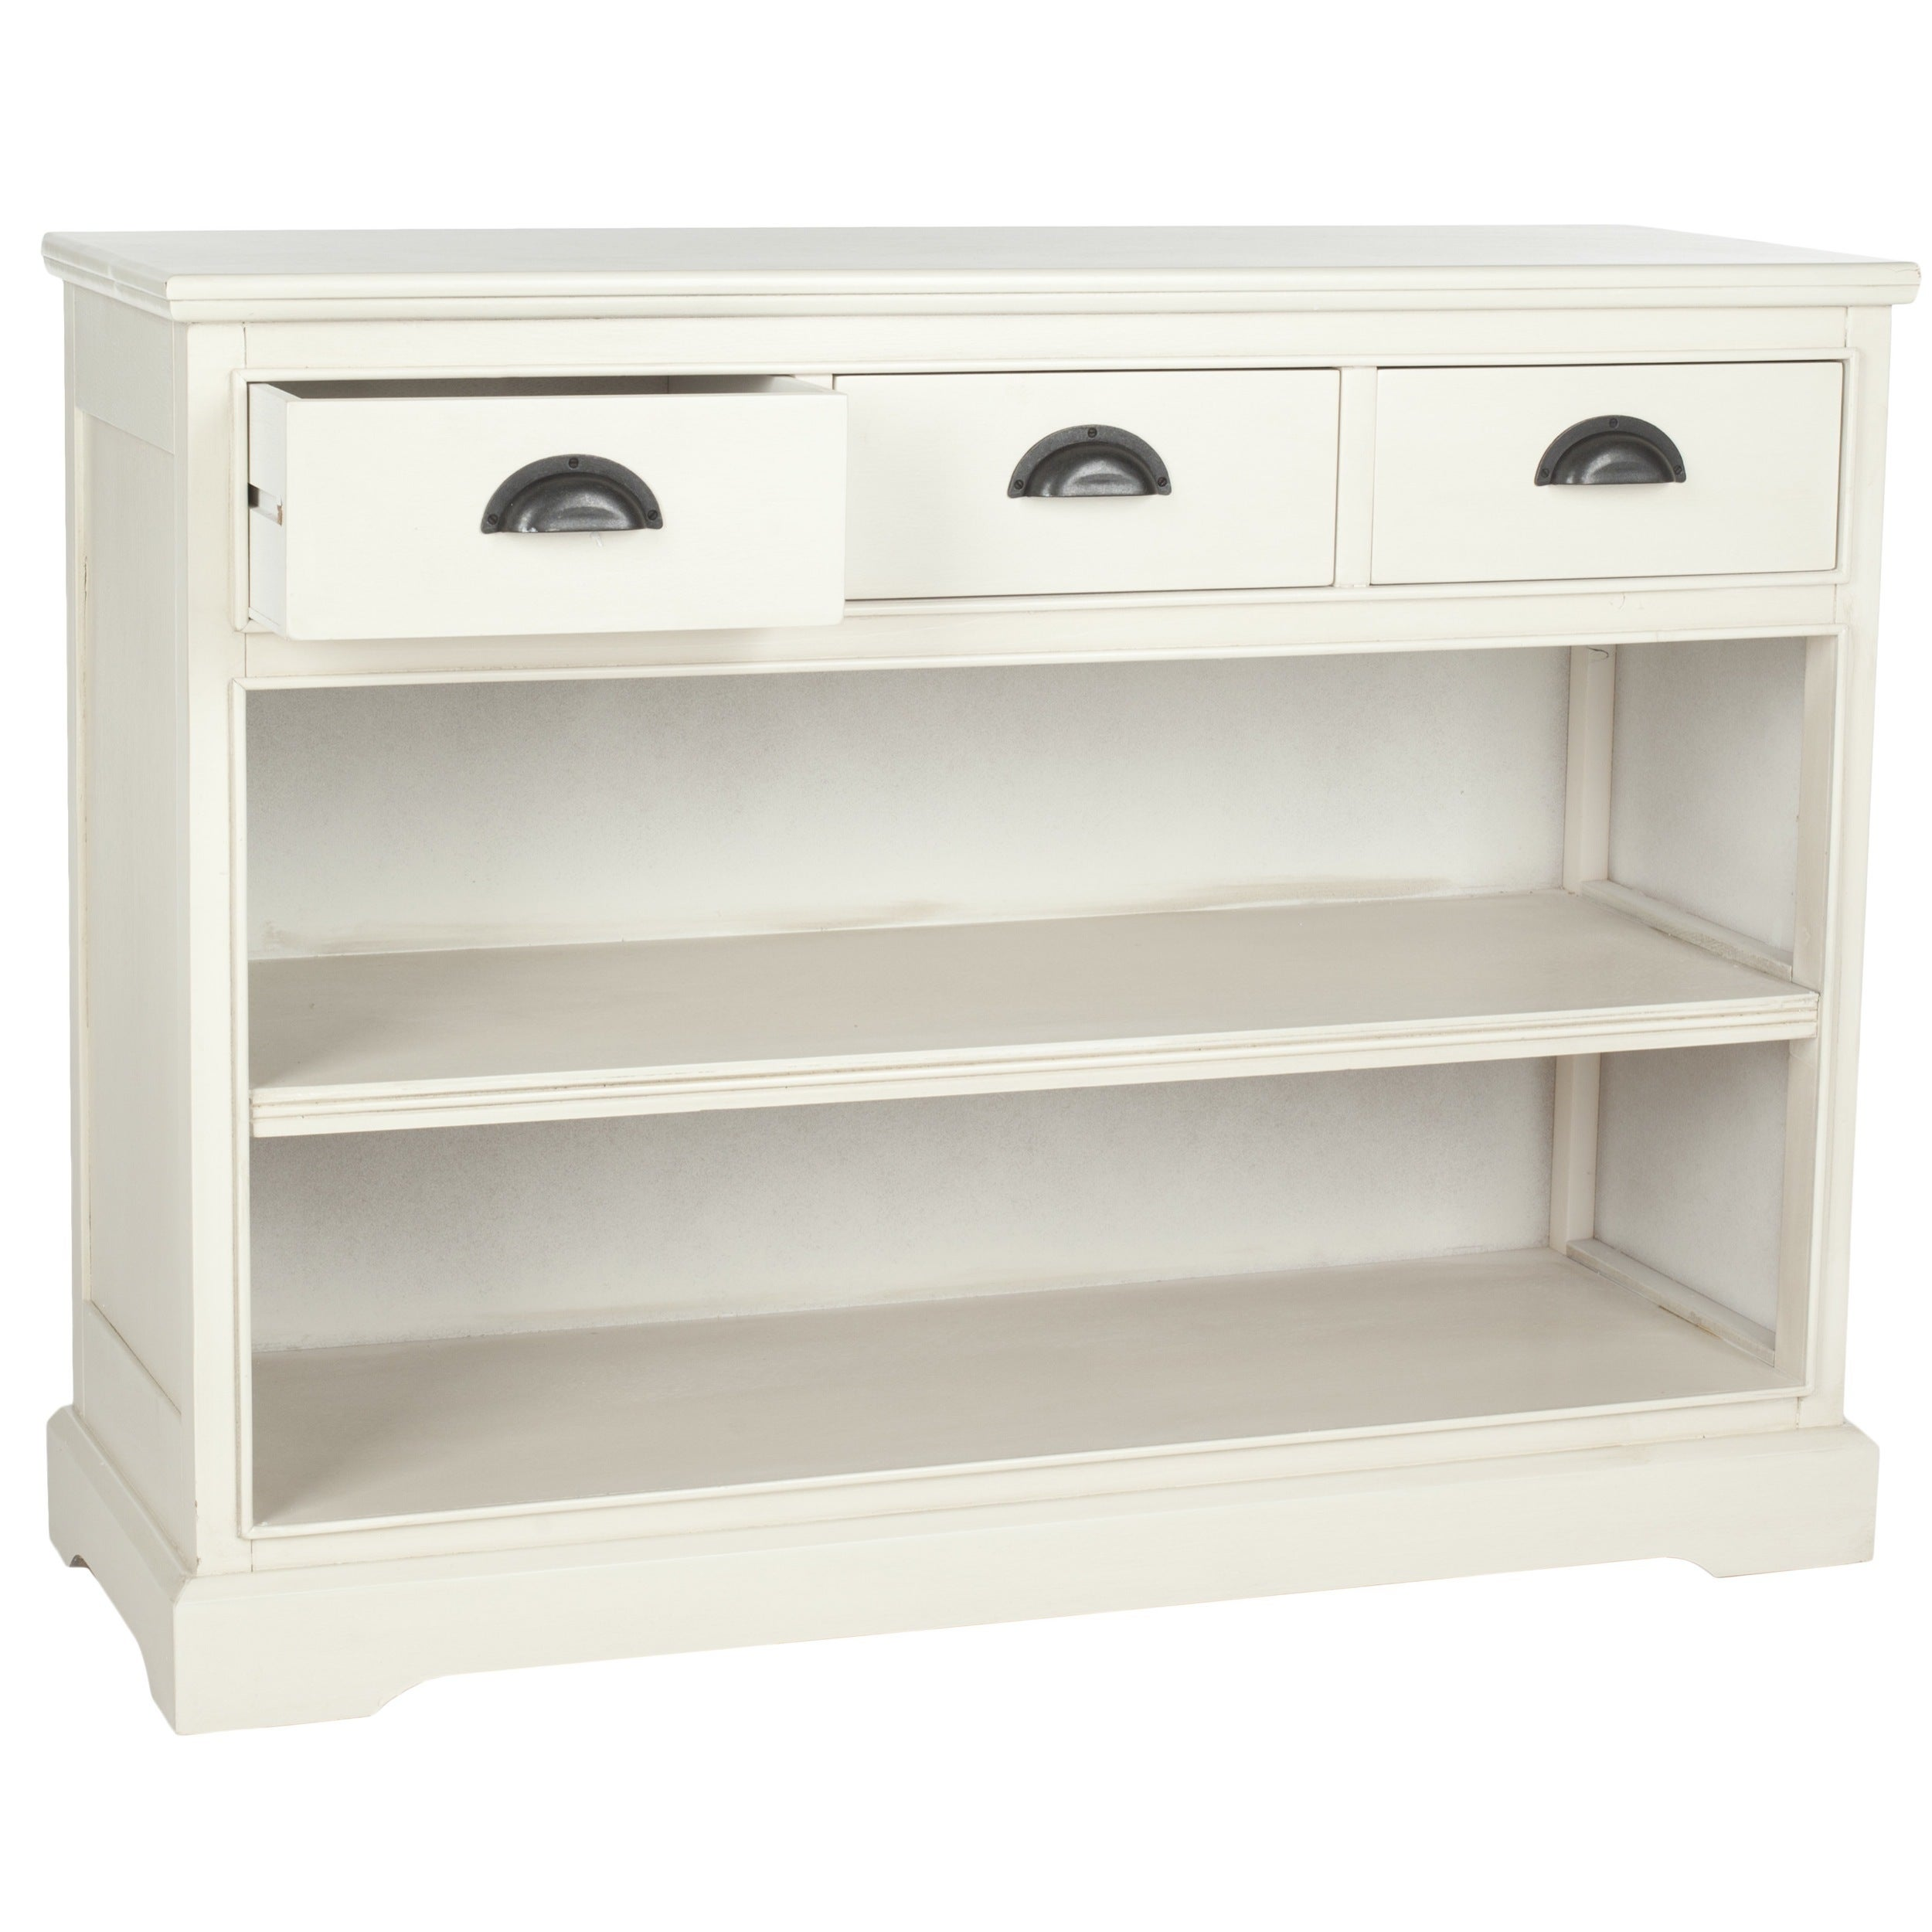 fit white being a pin bookcase storage love blog on ikea with extra it you shelves for shoe to i used can get drawers billy saw this bookshelf more